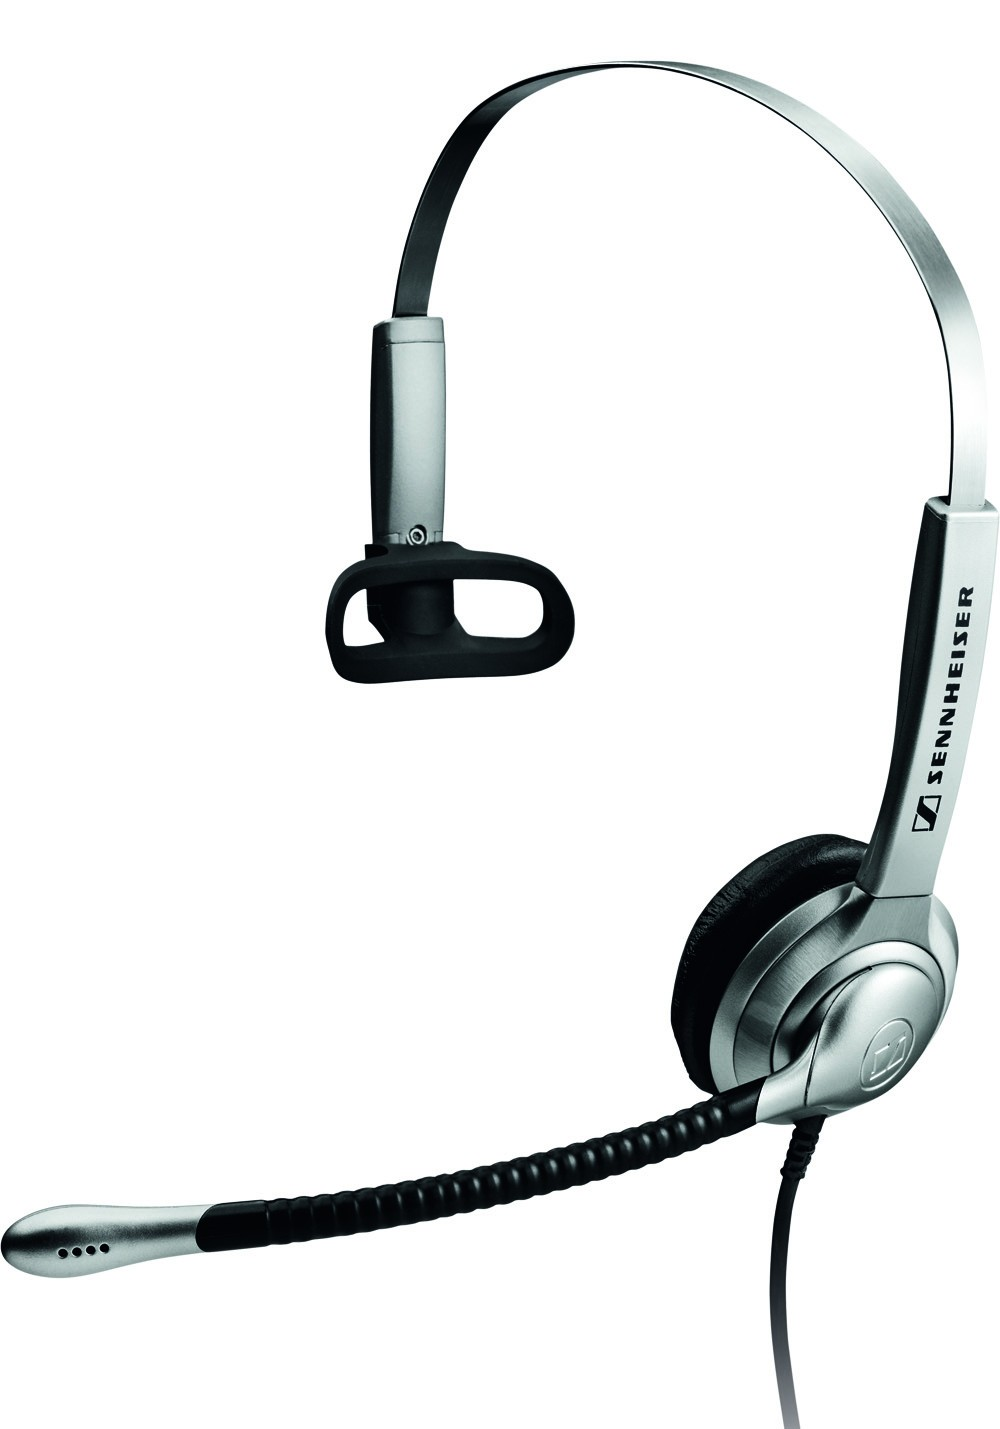 Sennheiser SH 330 Monaural Office Headset